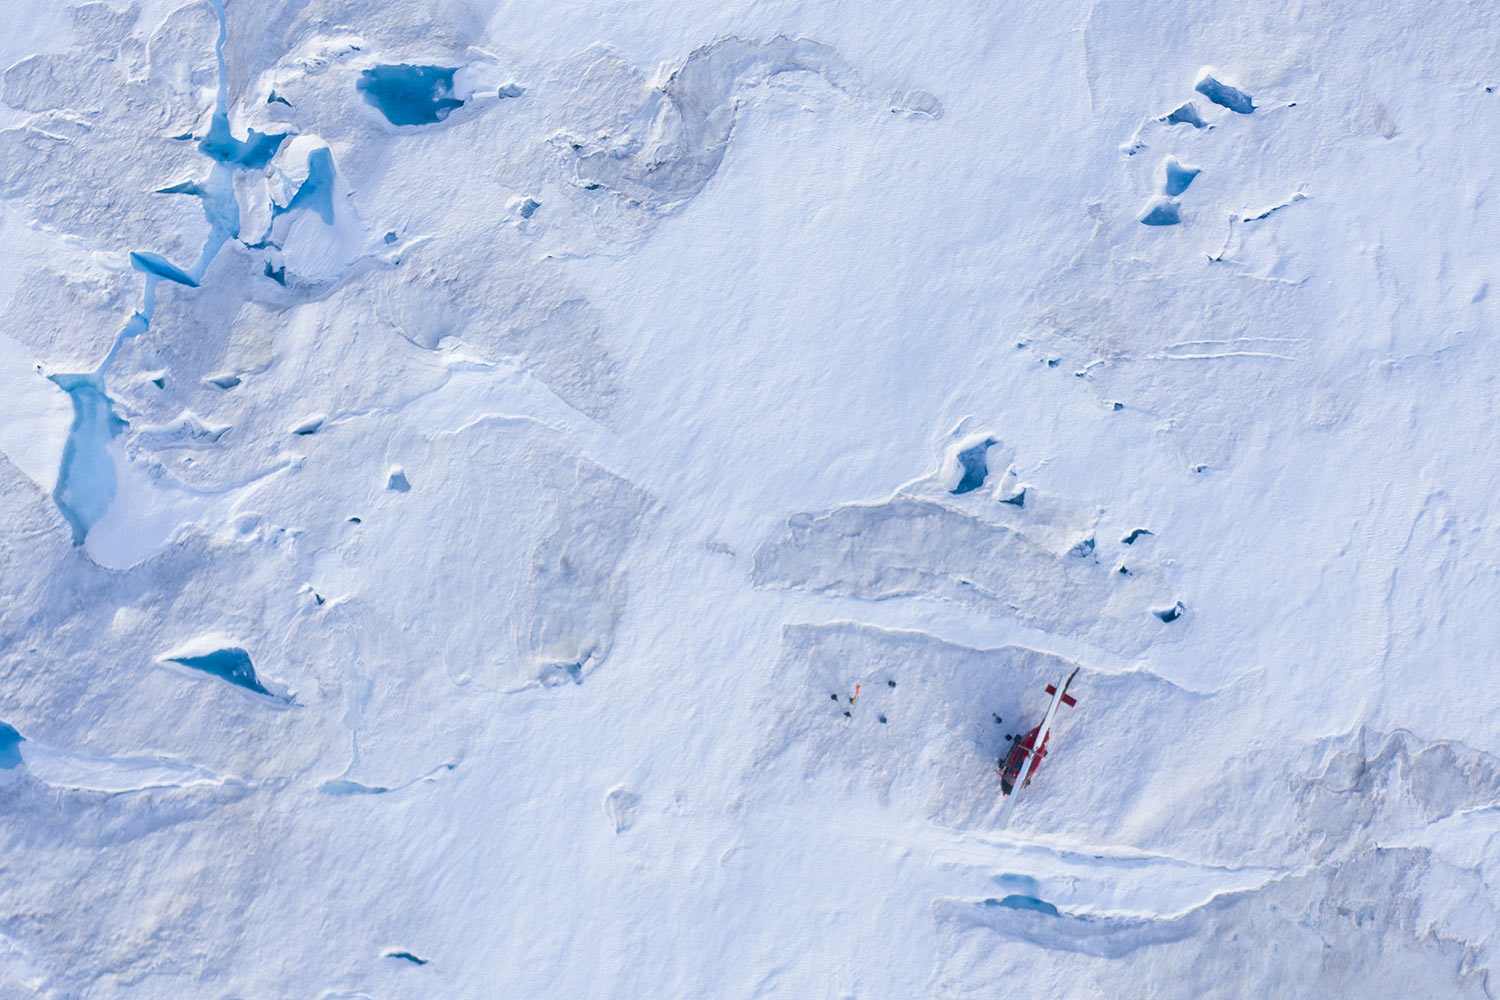 A helicopter carrying New York University air and ocean scientist David Holland and his team sits on the ice as they install a radar and GPS at the Helheim glacier, on Aug. 16, 2019, in Greenland. Scientists are hard at work there, trying to understand the alarmingly rapid melting of the ice. (AP Photo/Felipe Dana)